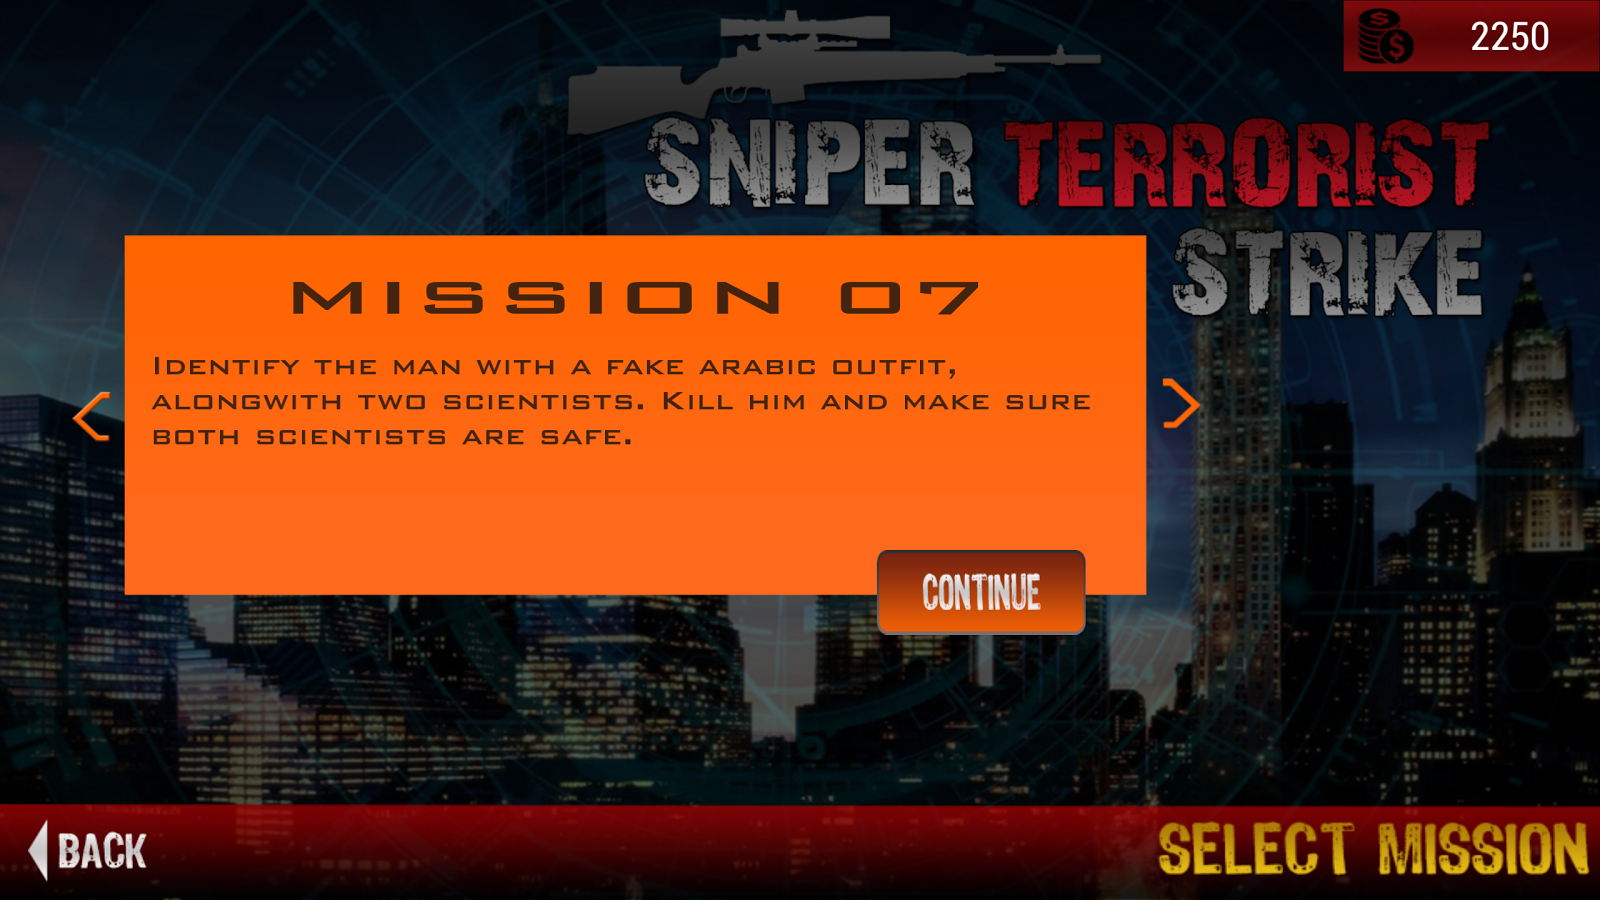 Sniper Terrorist Strike Screenshot 4